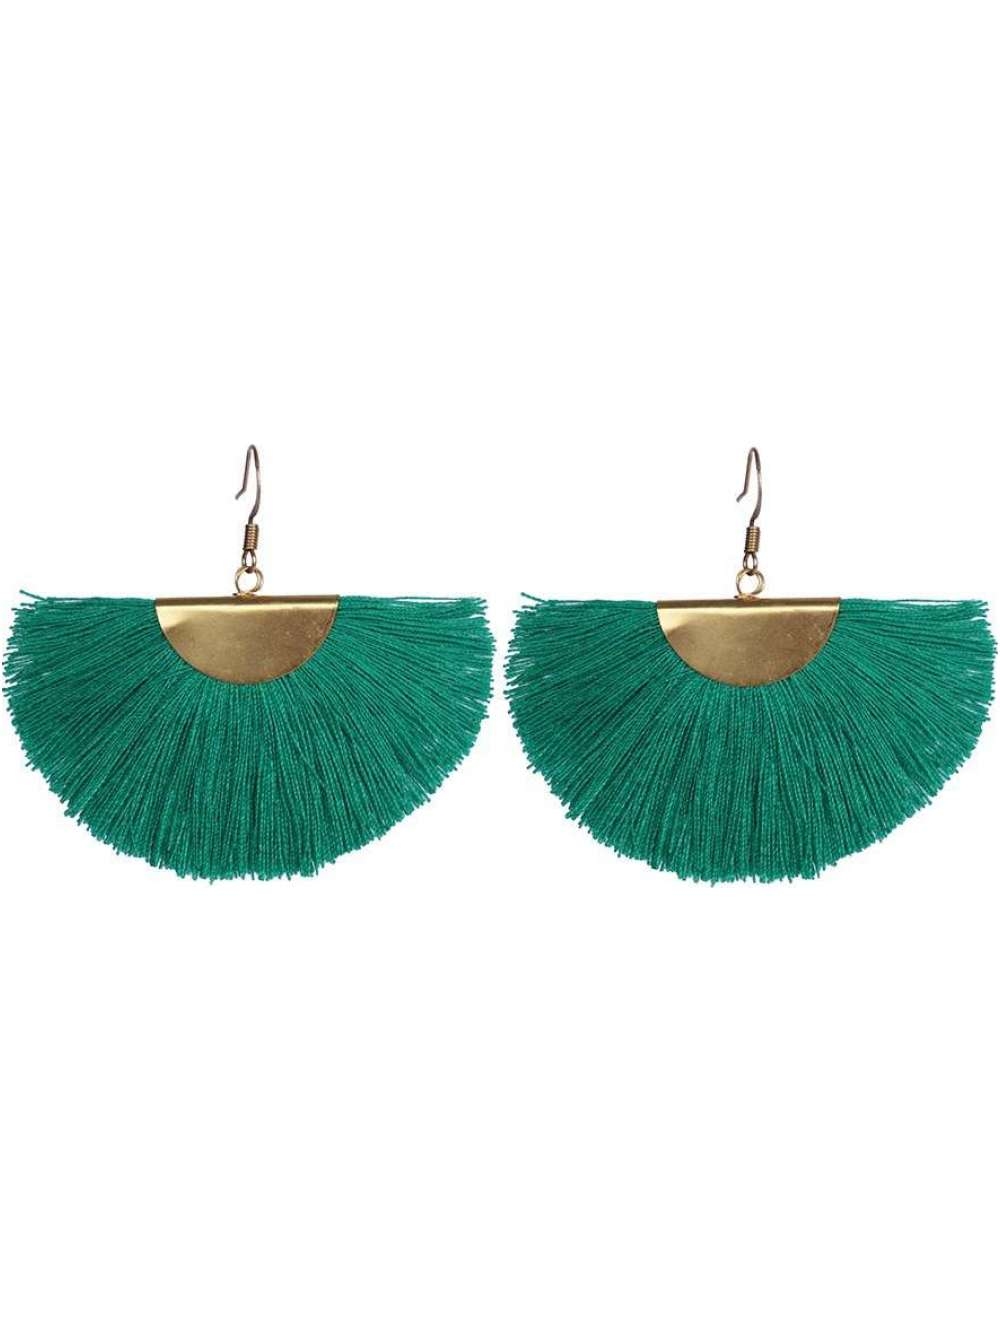 Color Me Beautiful -  Emerald Green Fringe Earrings - Cause-ology